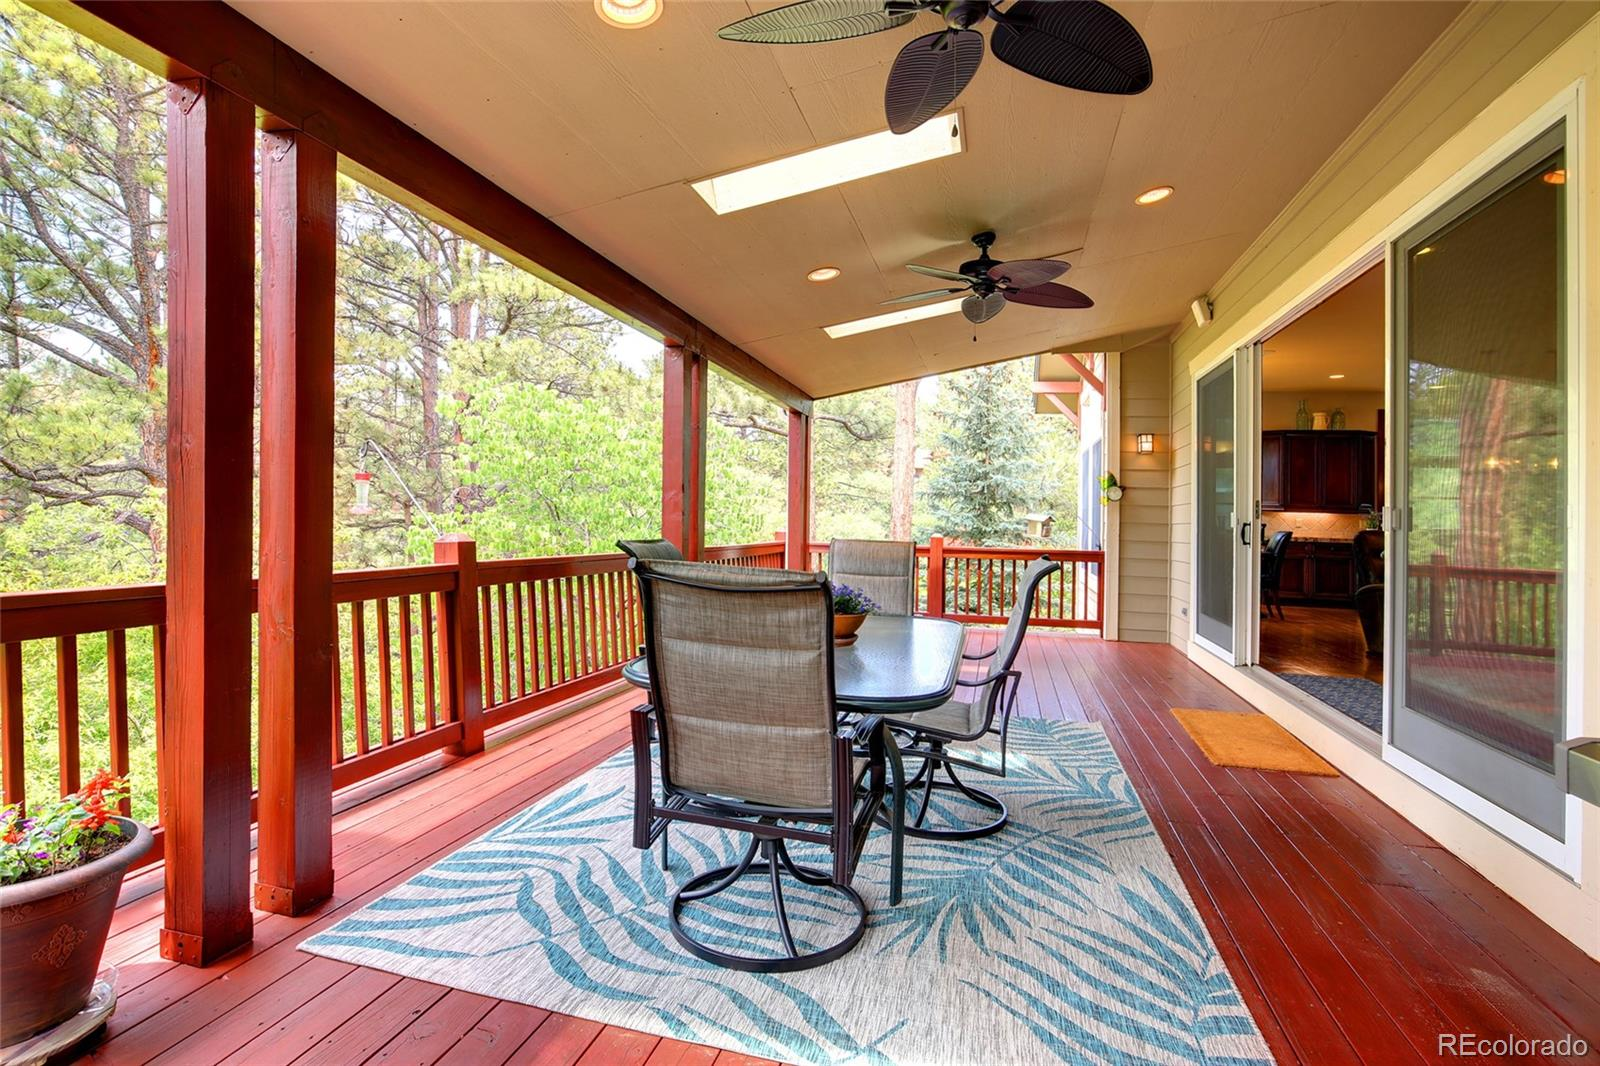 MLS# 8150320 - 15 - 1198 Forest Trails Drive, Castle Pines, CO 80108